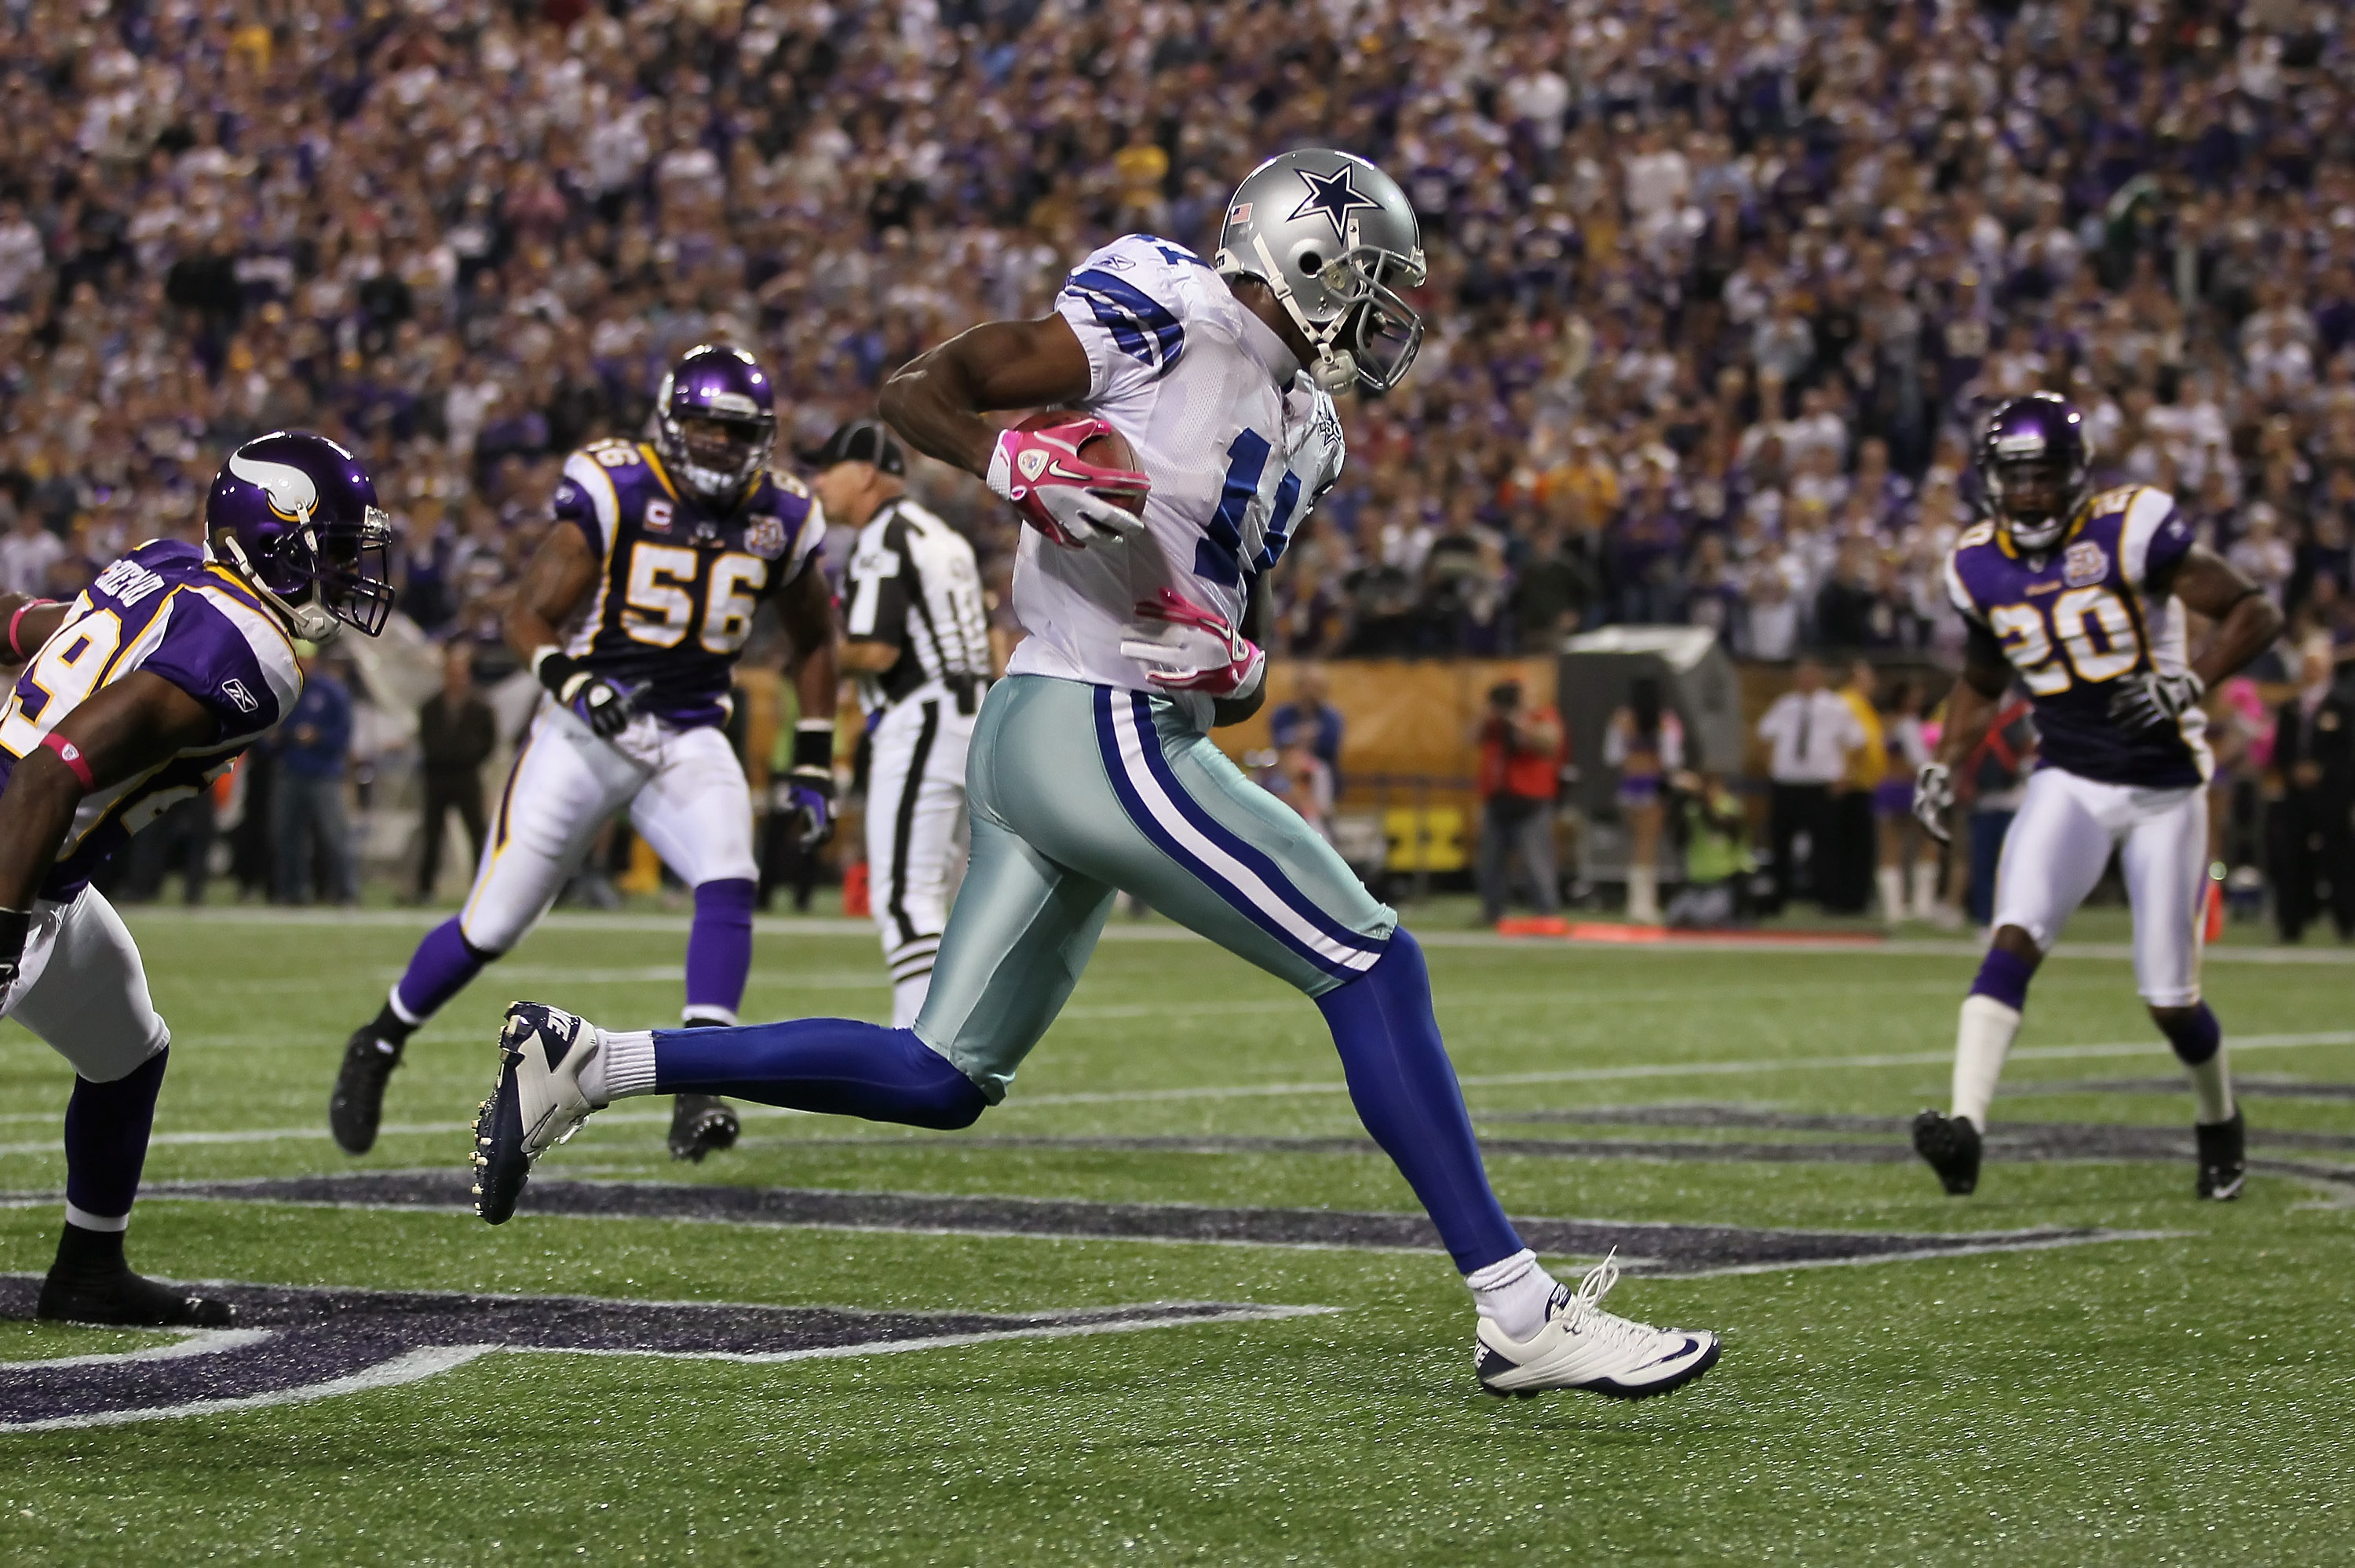 MINNEAPOLIS - OCTOBER 17:  Wide receiver Roy Williams #11 of the Dallas Cowboys catches his second touchdown pass of the game in the second quarter against the Minnesota Vikings at Mall of America Field on October 17, 2010 in Minneapolis, Minnesota.  (Pho